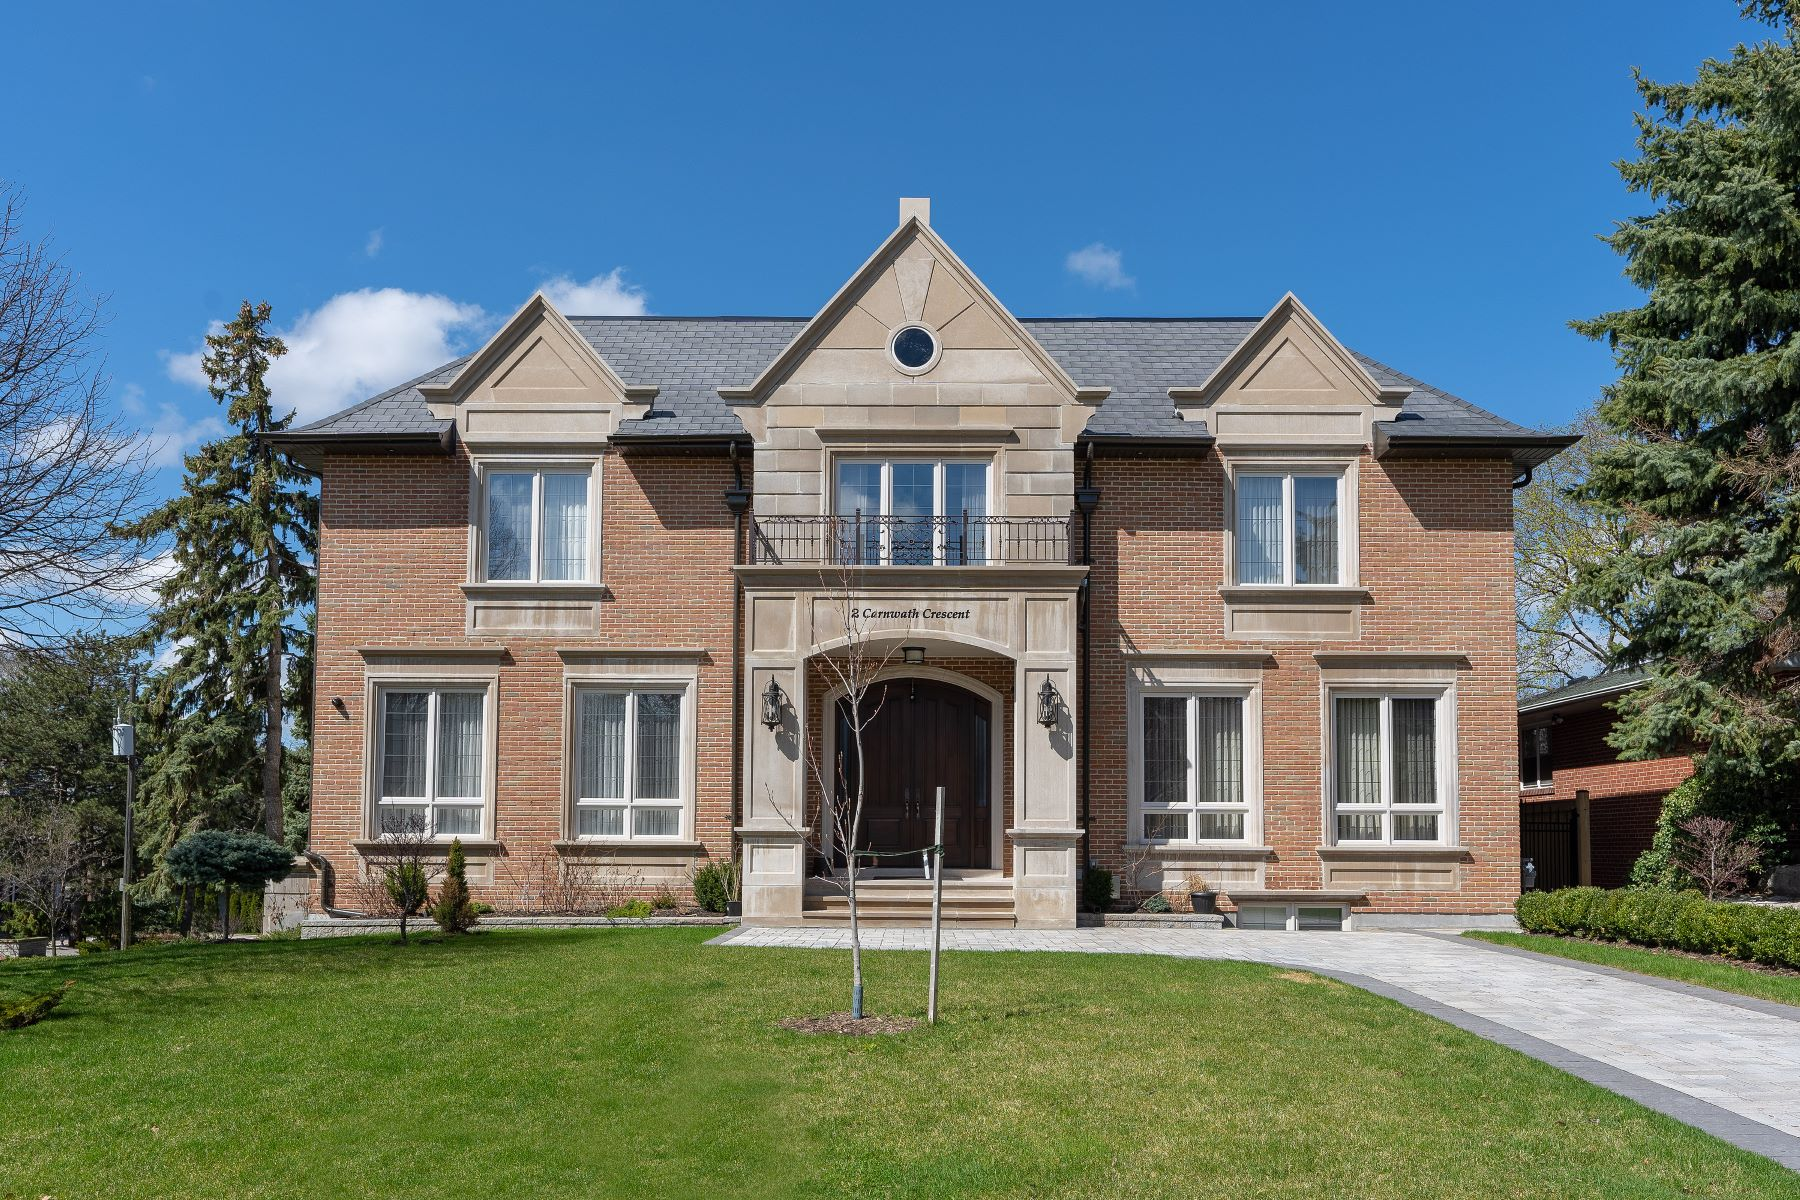 Single Family Home for Sale at Classic on Carnwath 2 Carnwath Cres Toronto, Ontario M2P 1J5 Canada